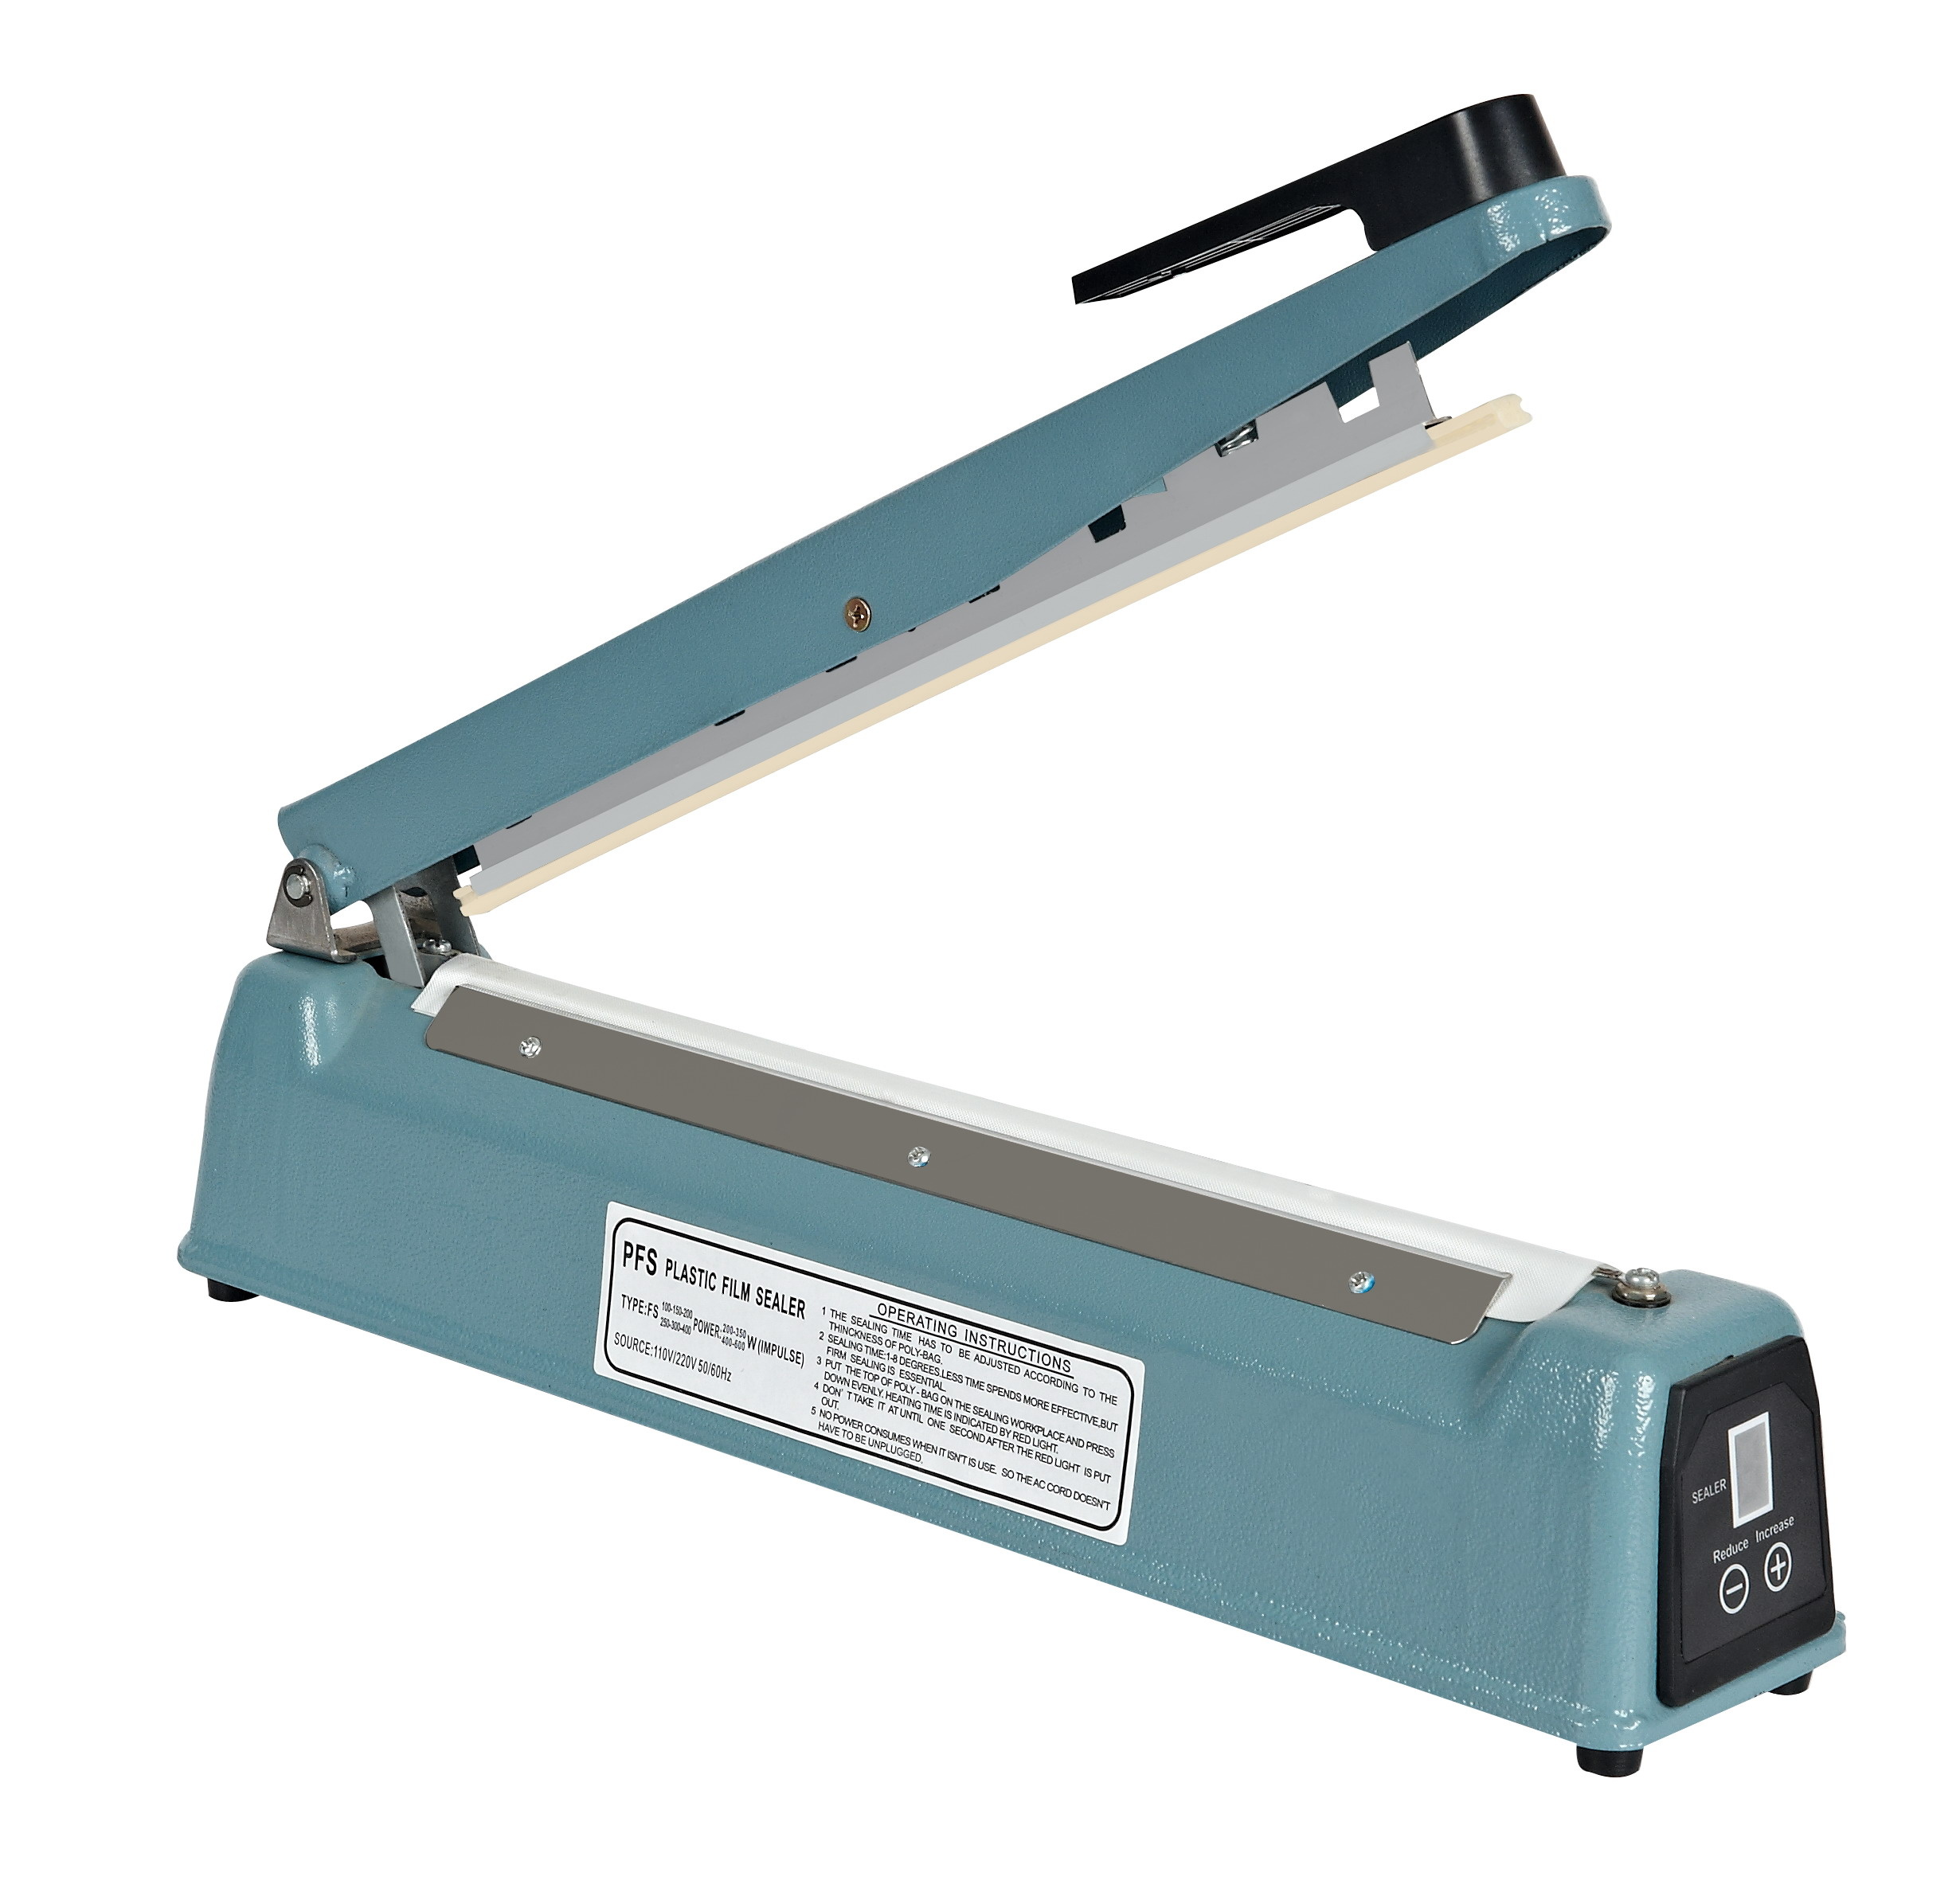 <b>Hand Impulse Sealer Plastic Flims Packaging Machine FS-400</b>